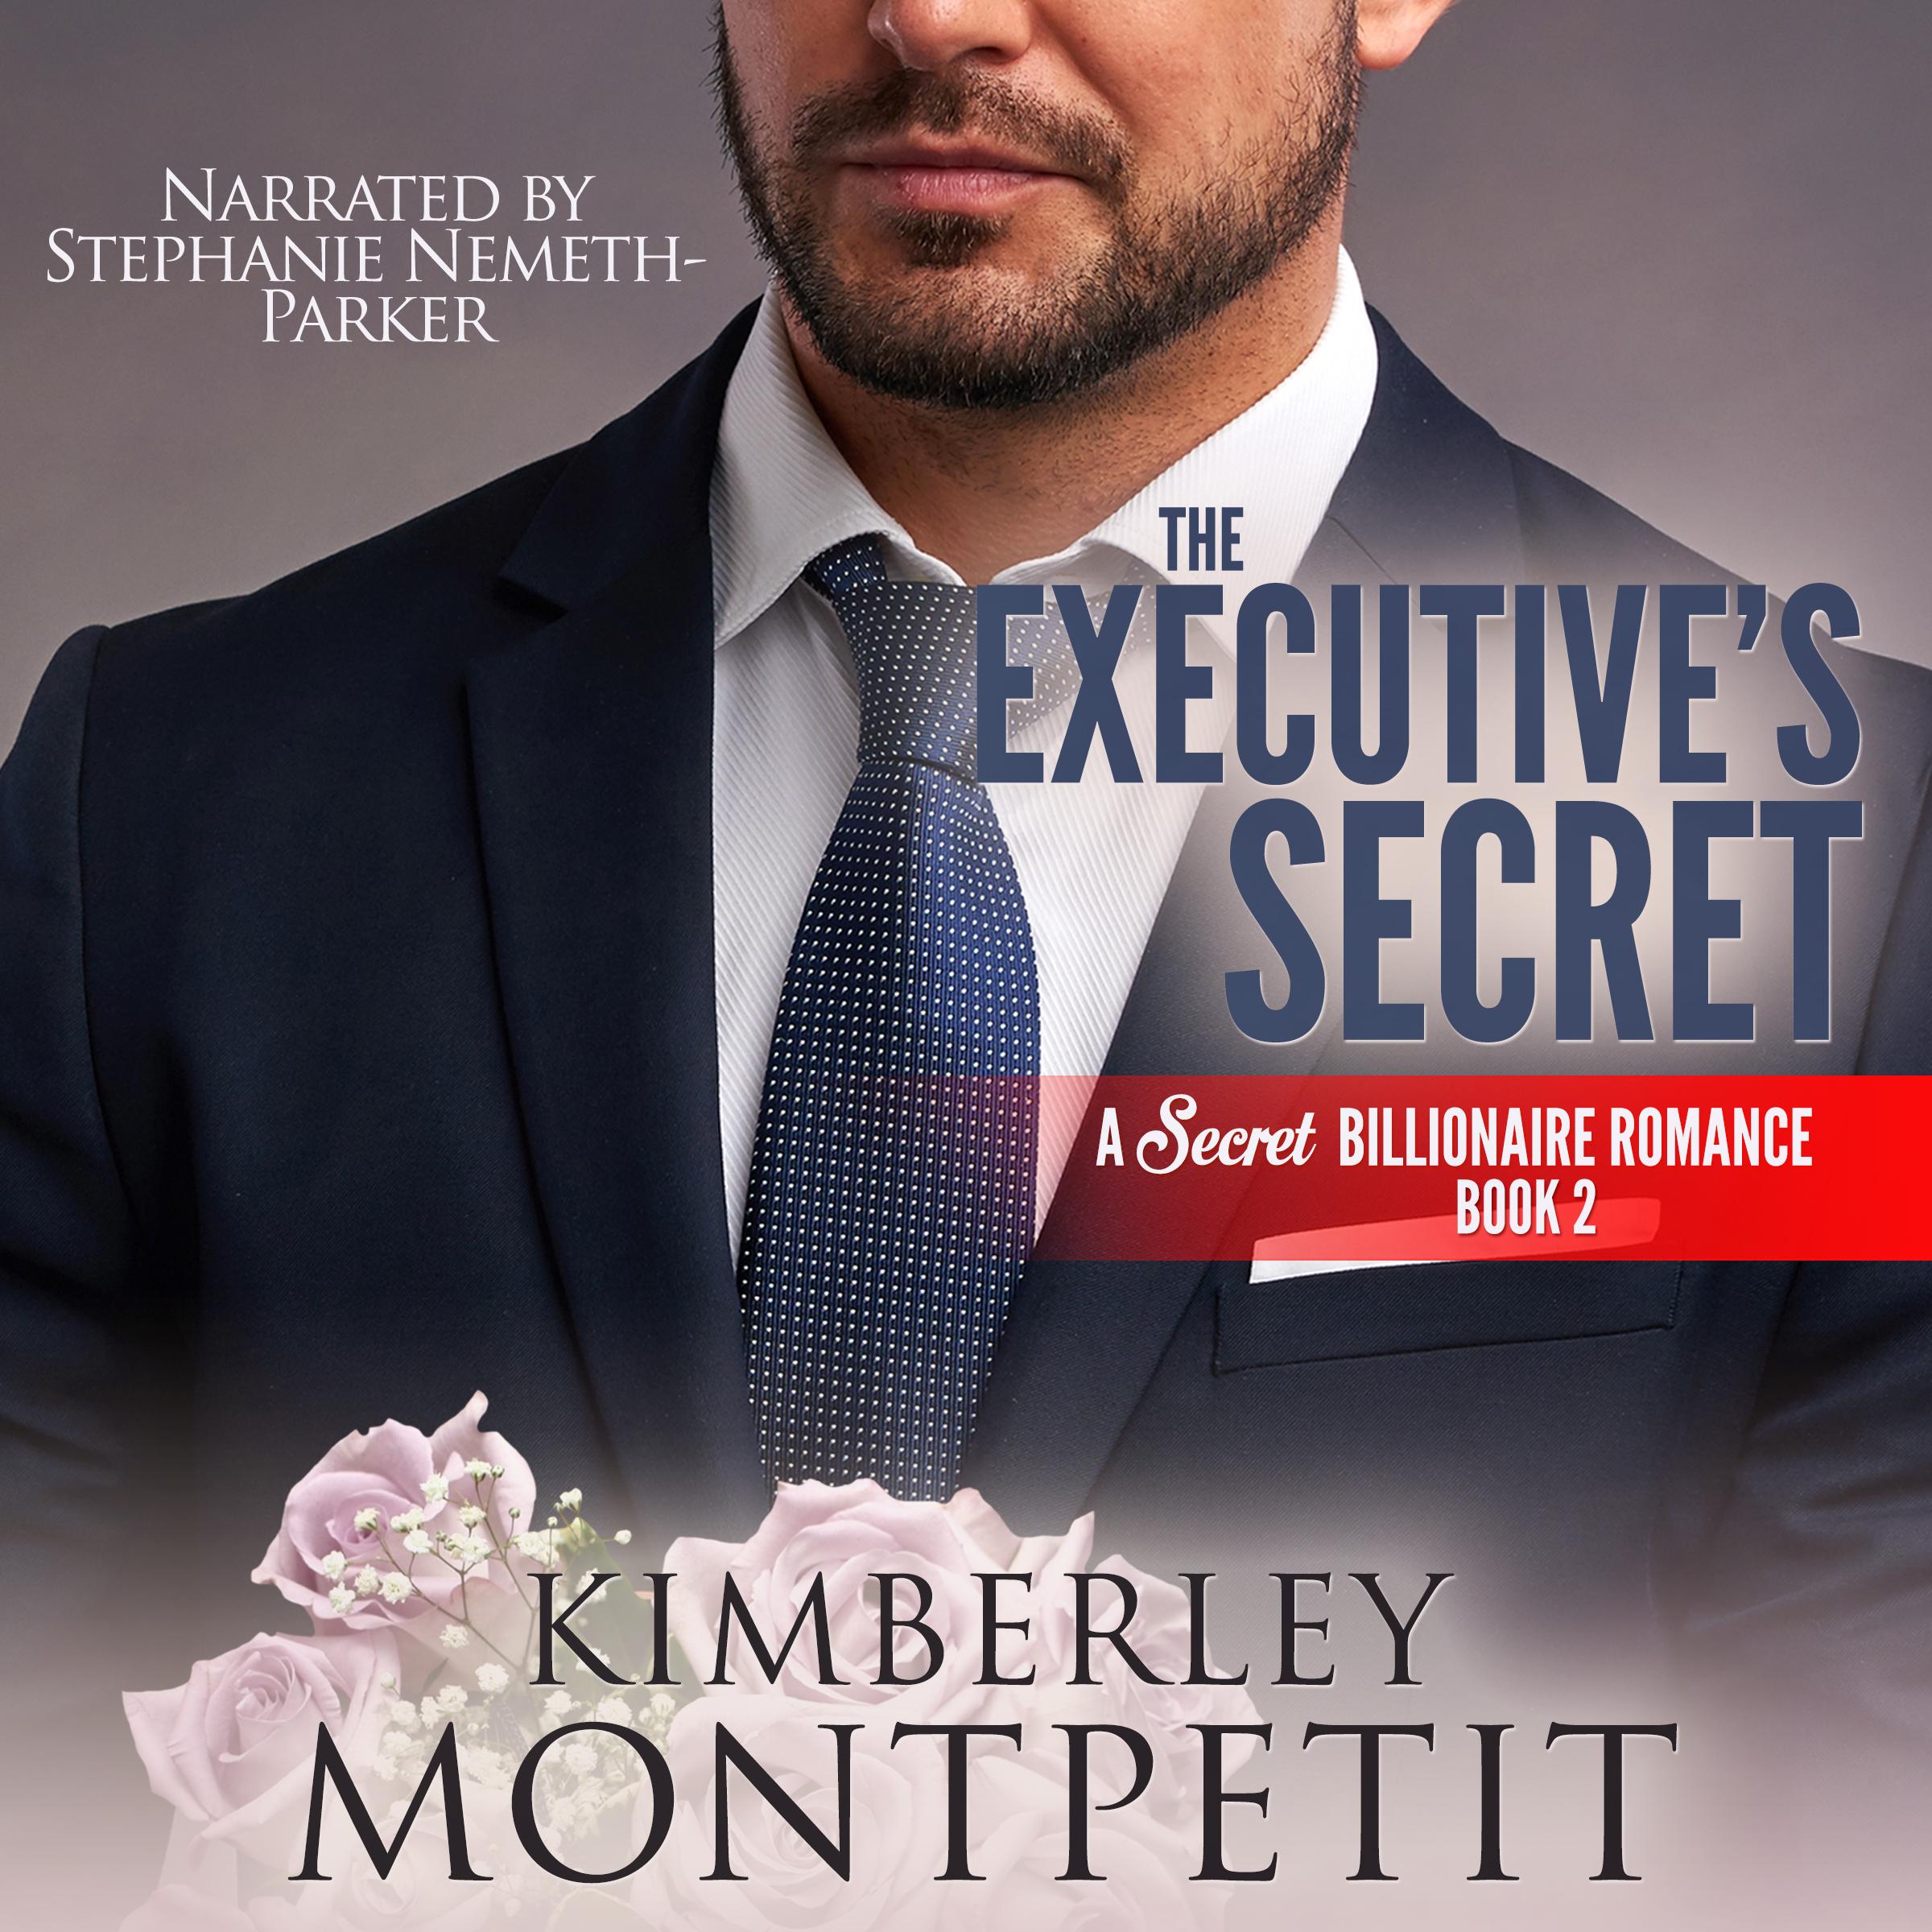 The Executive's Secret